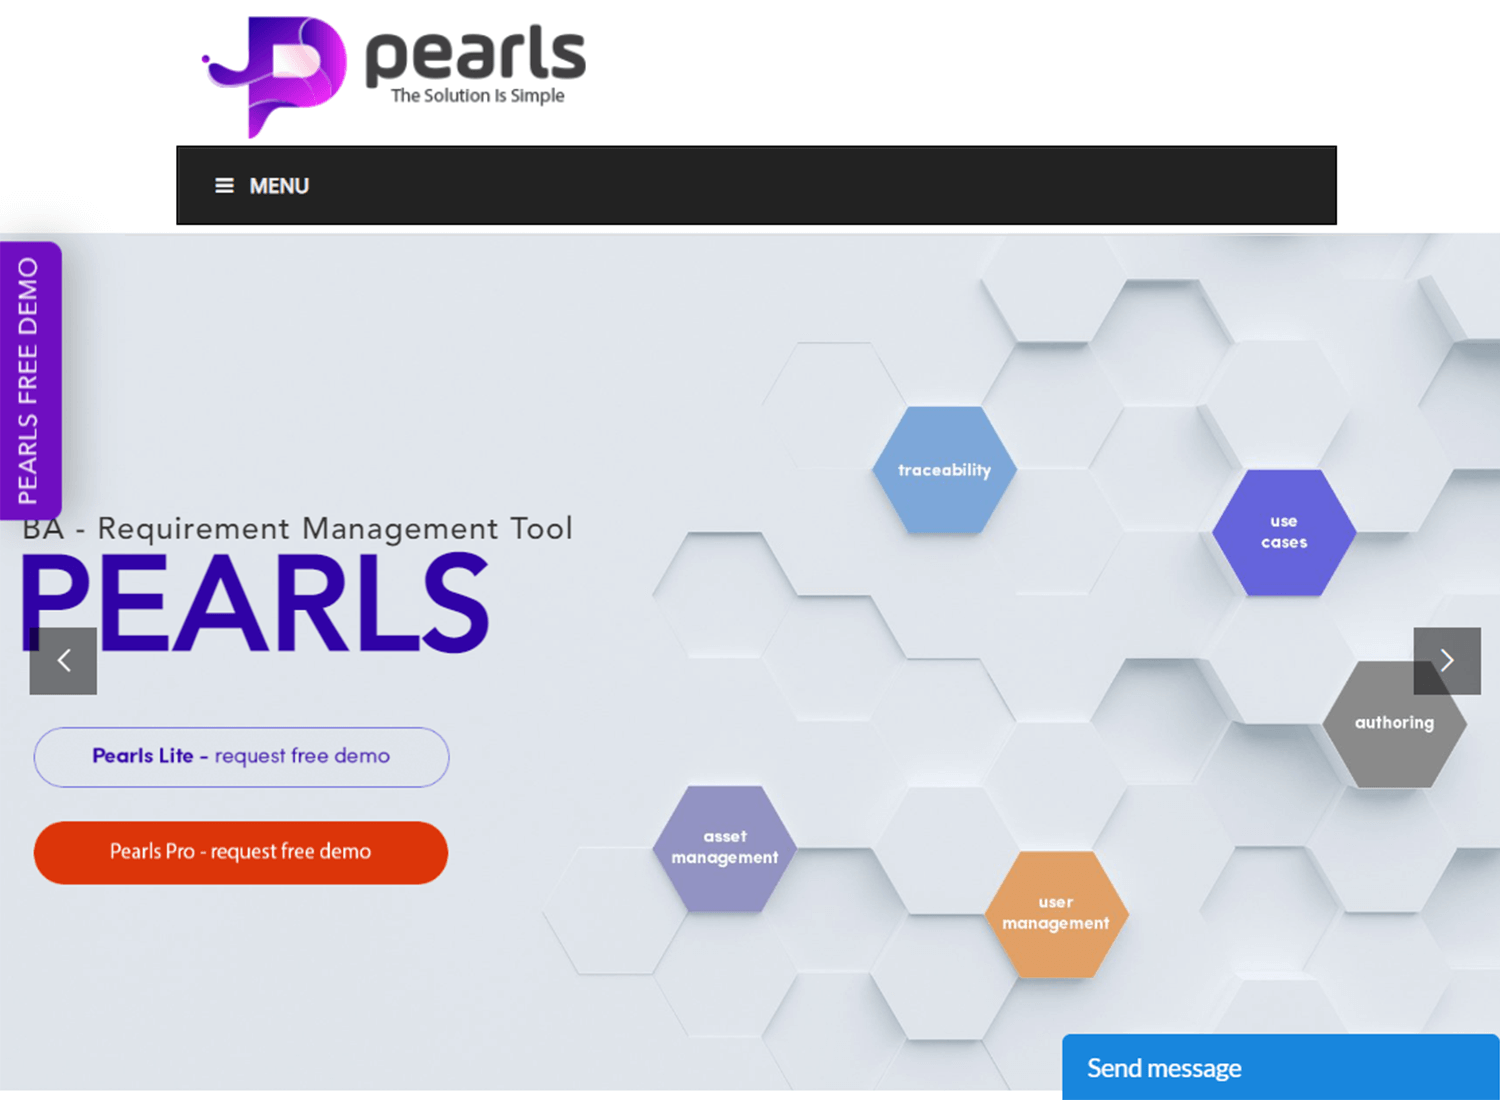 pearls as a requirements management tool for small teams